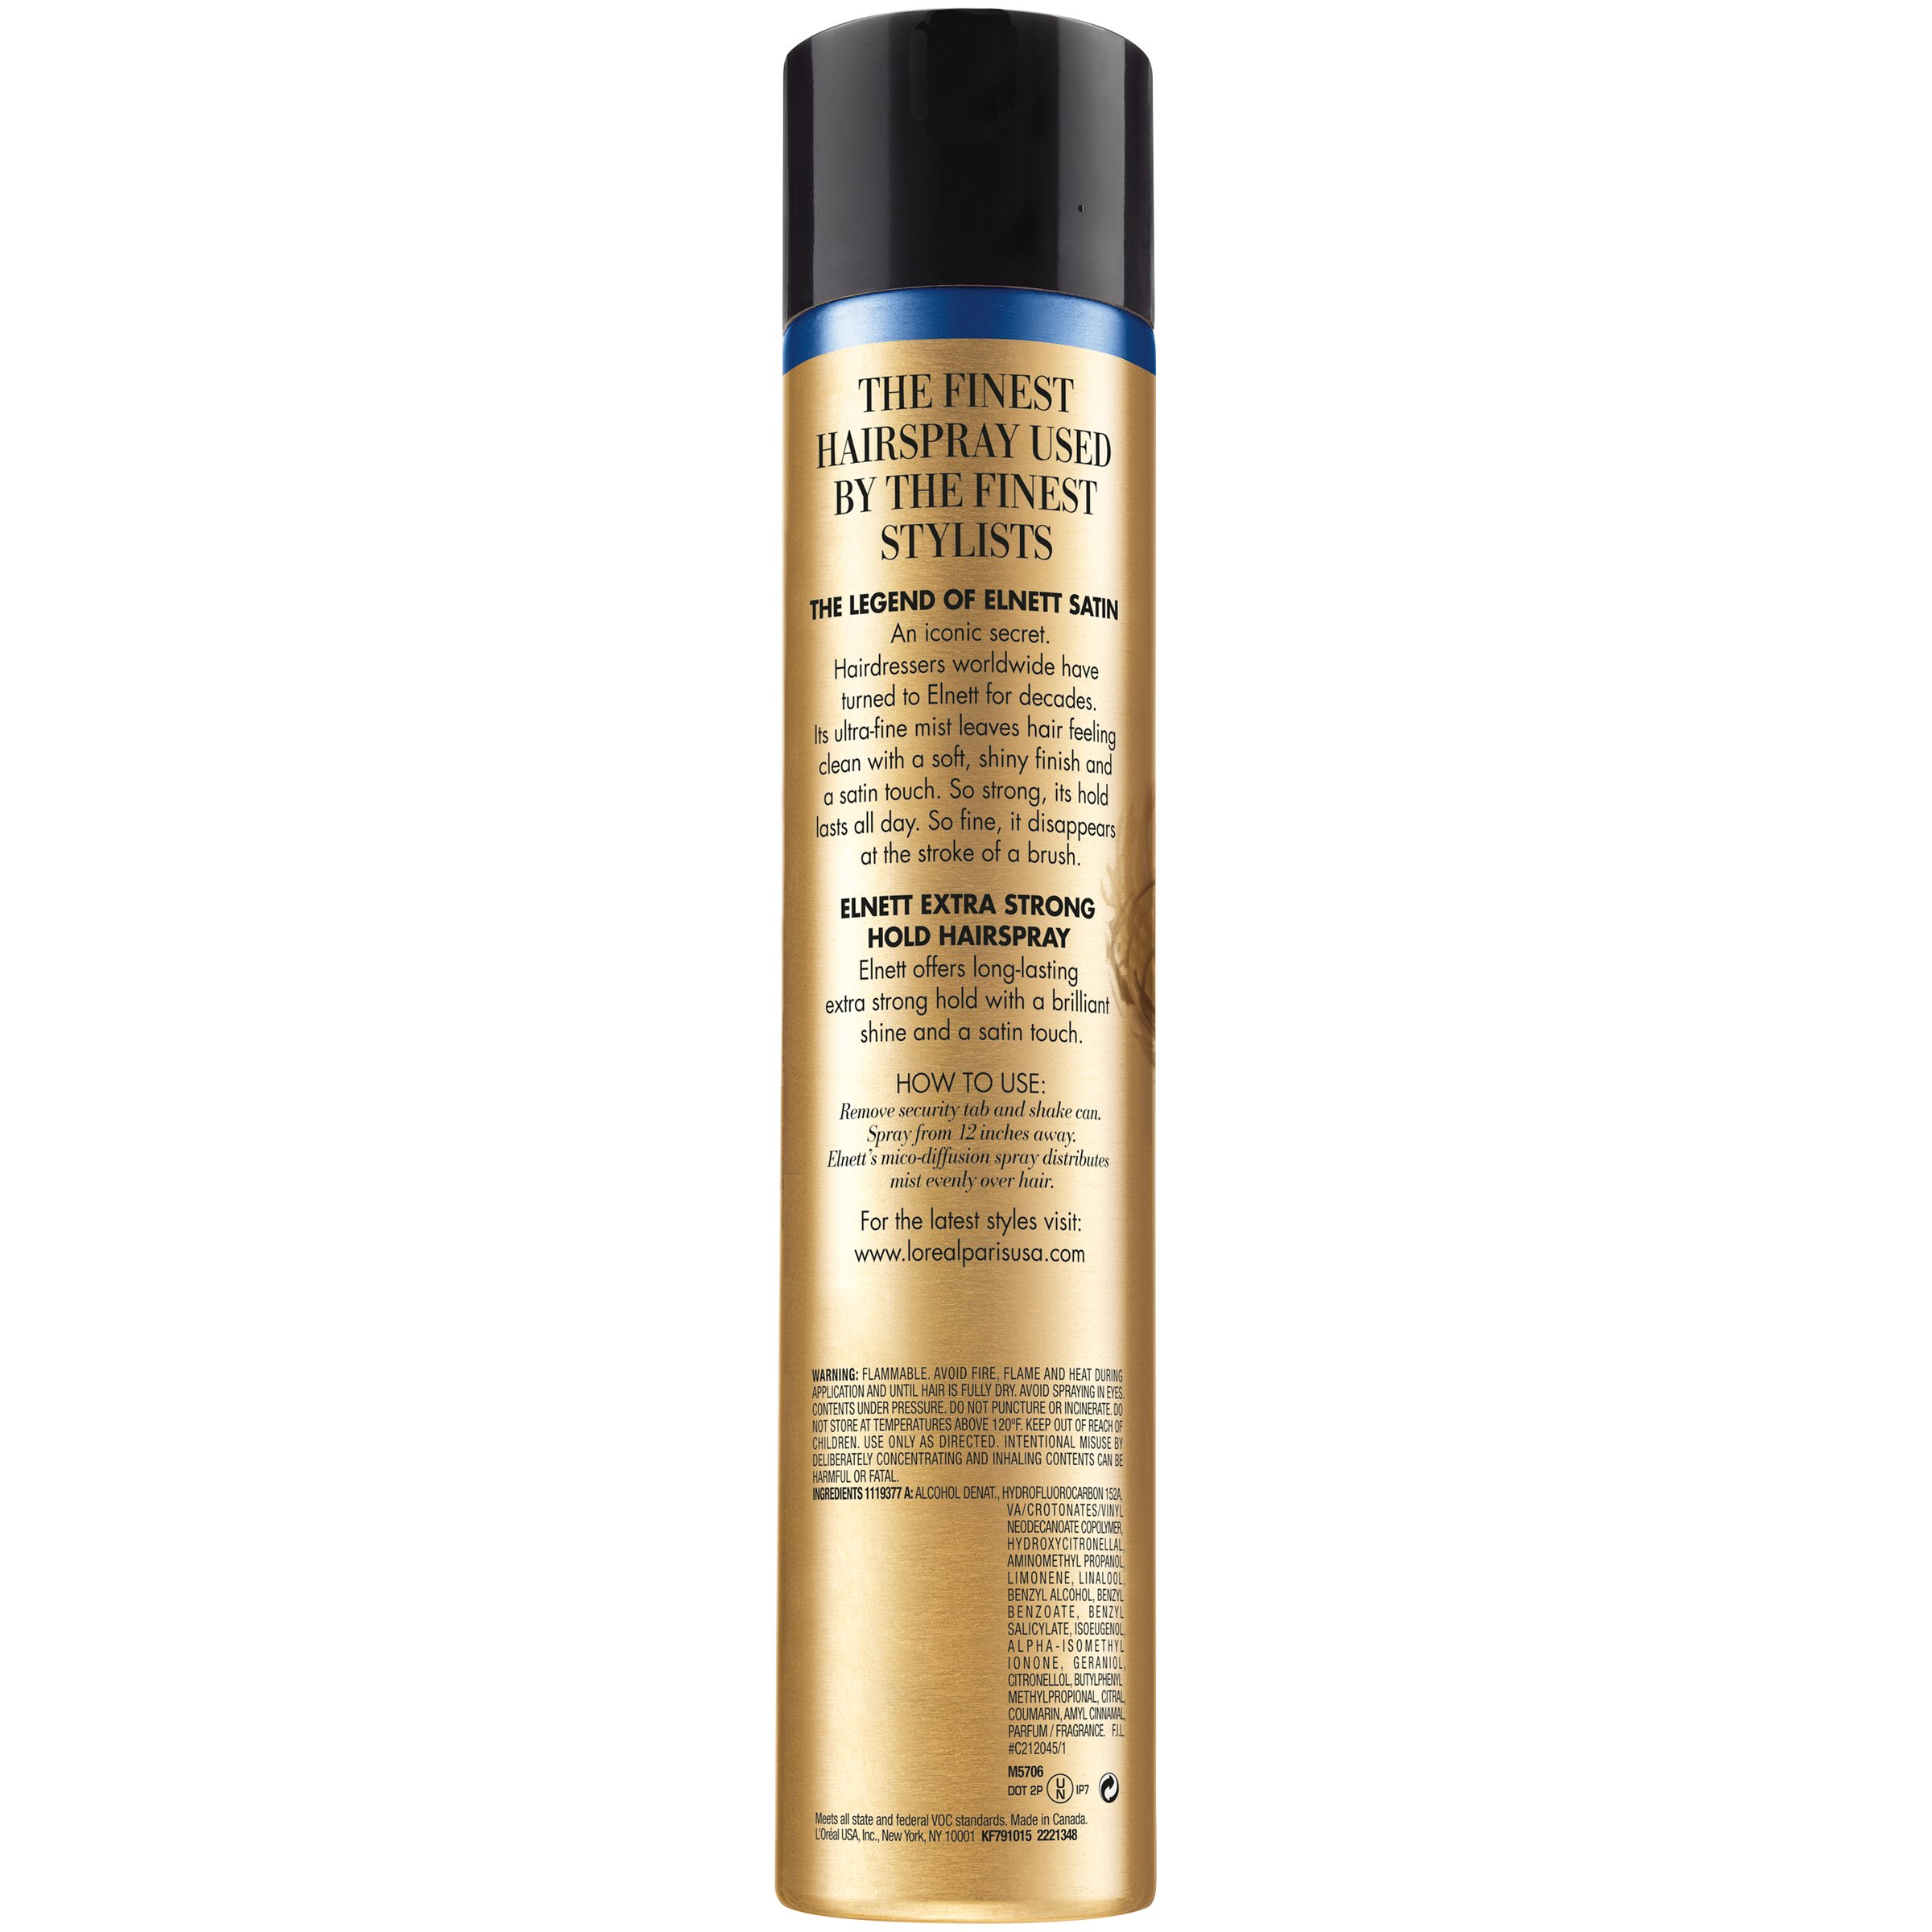 L'Oréal Paris Elnett Satin Extra Strong Hold Hairspray, 11 oz. (Packaging May Vary) by L'Oreal Paris (Image #2)